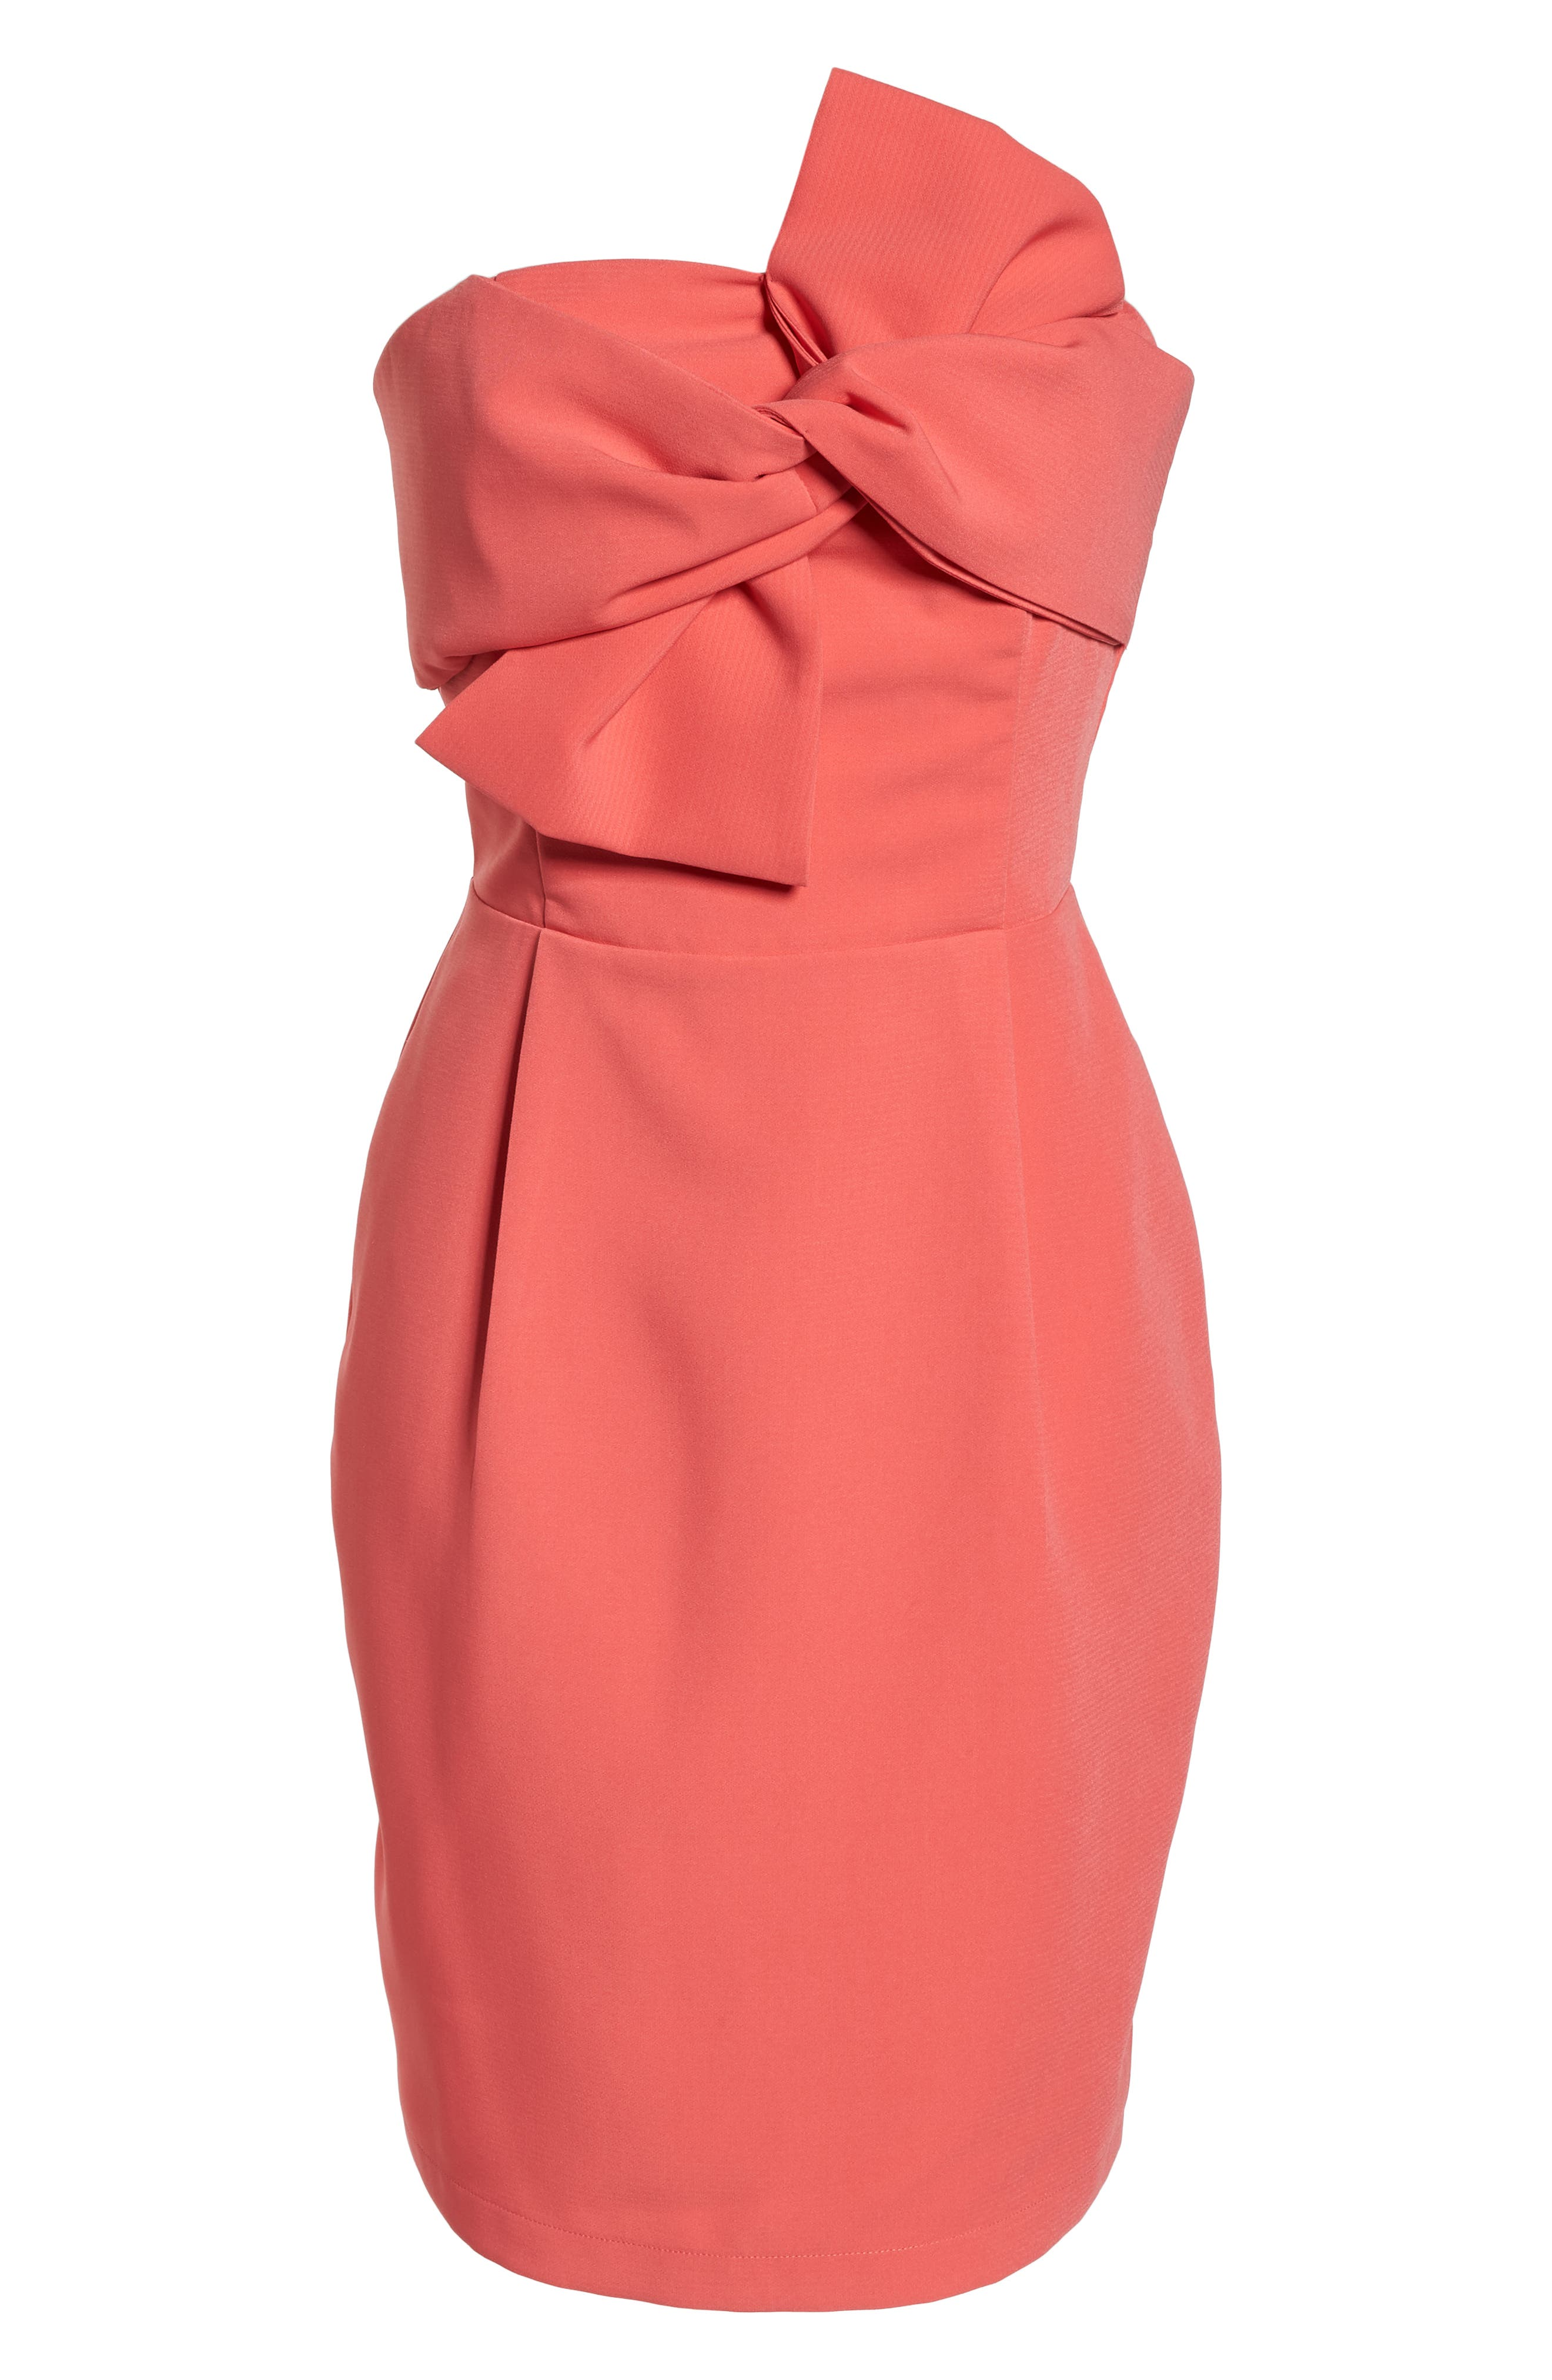 Harper Knotted Strapless Minidress,                             Alternate thumbnail 7, color,                             CORAL